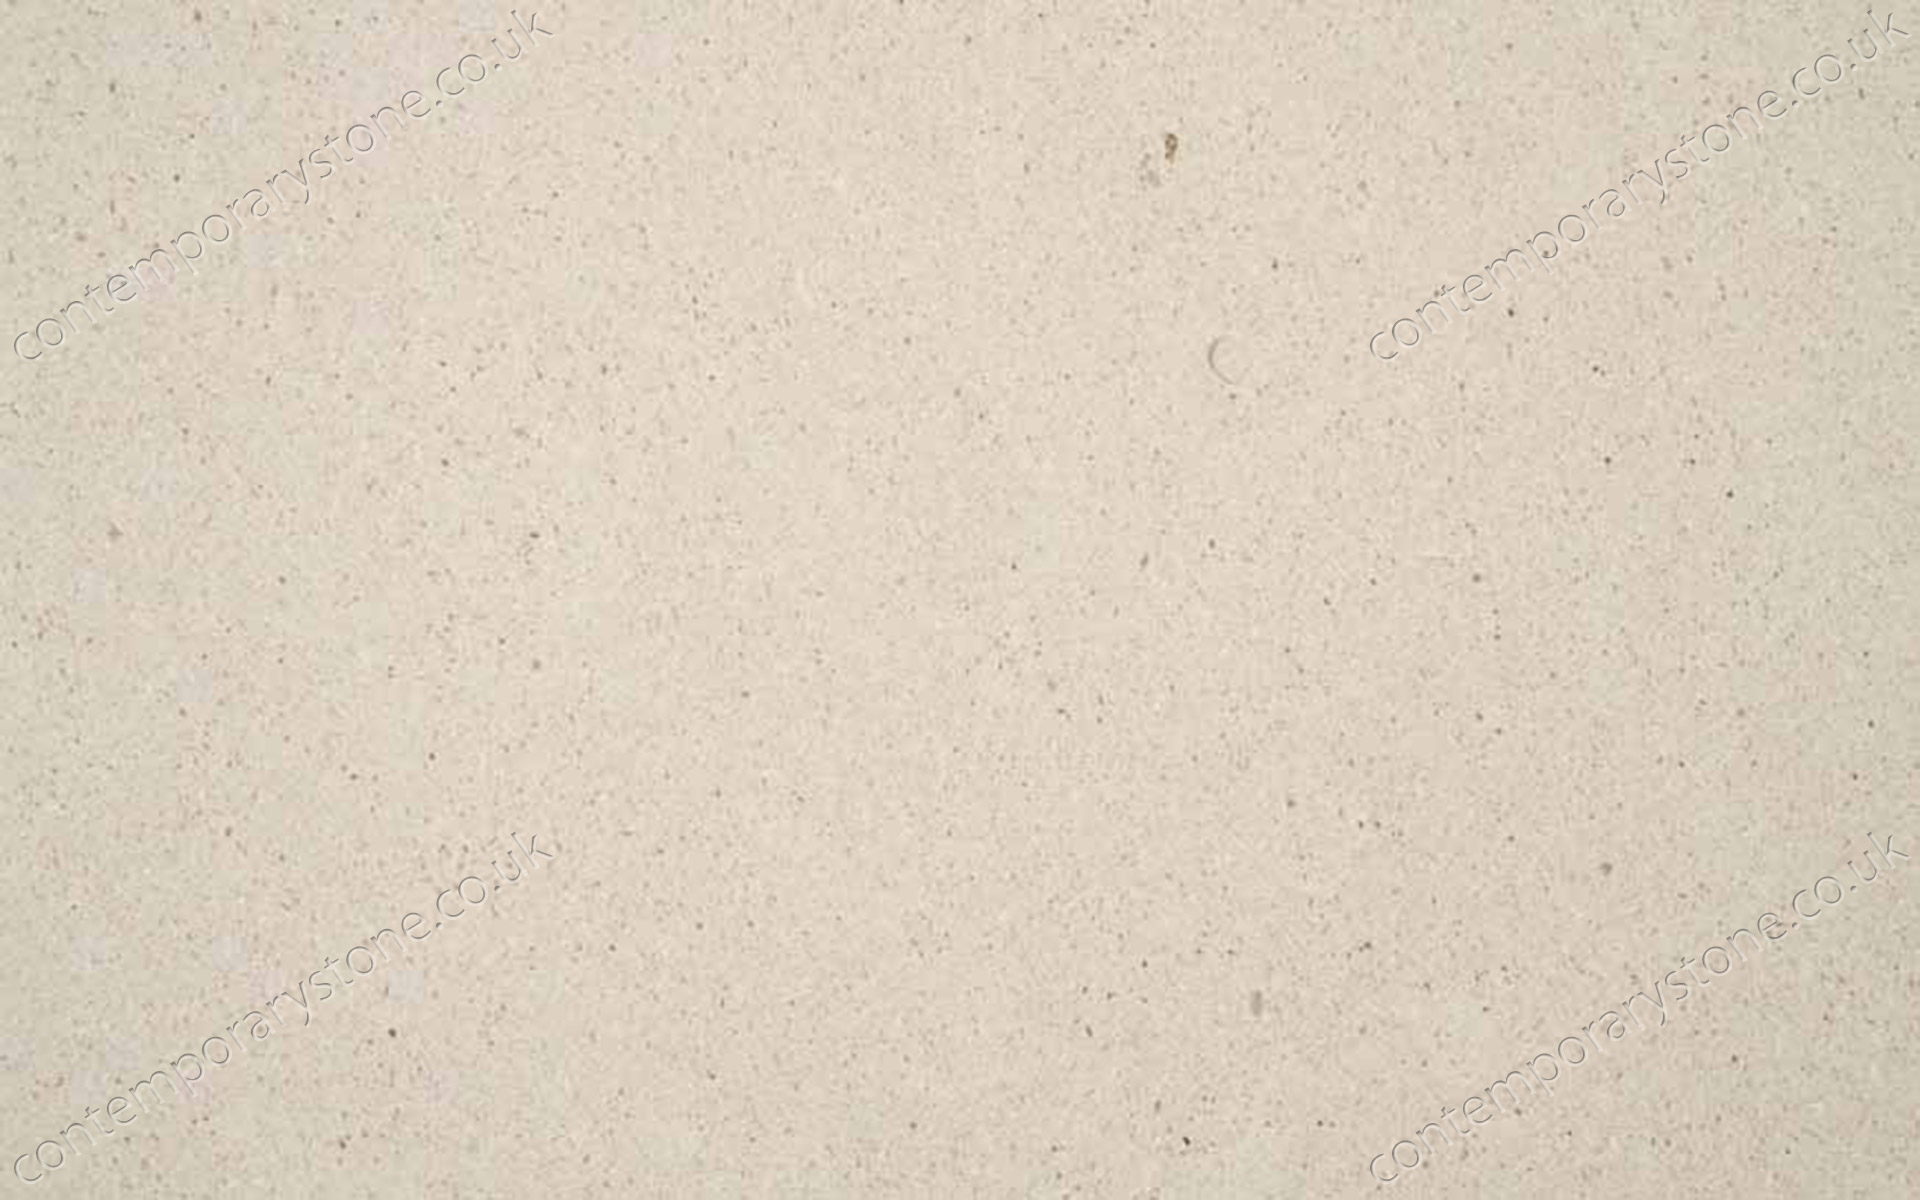 Antalia White limestone close-up